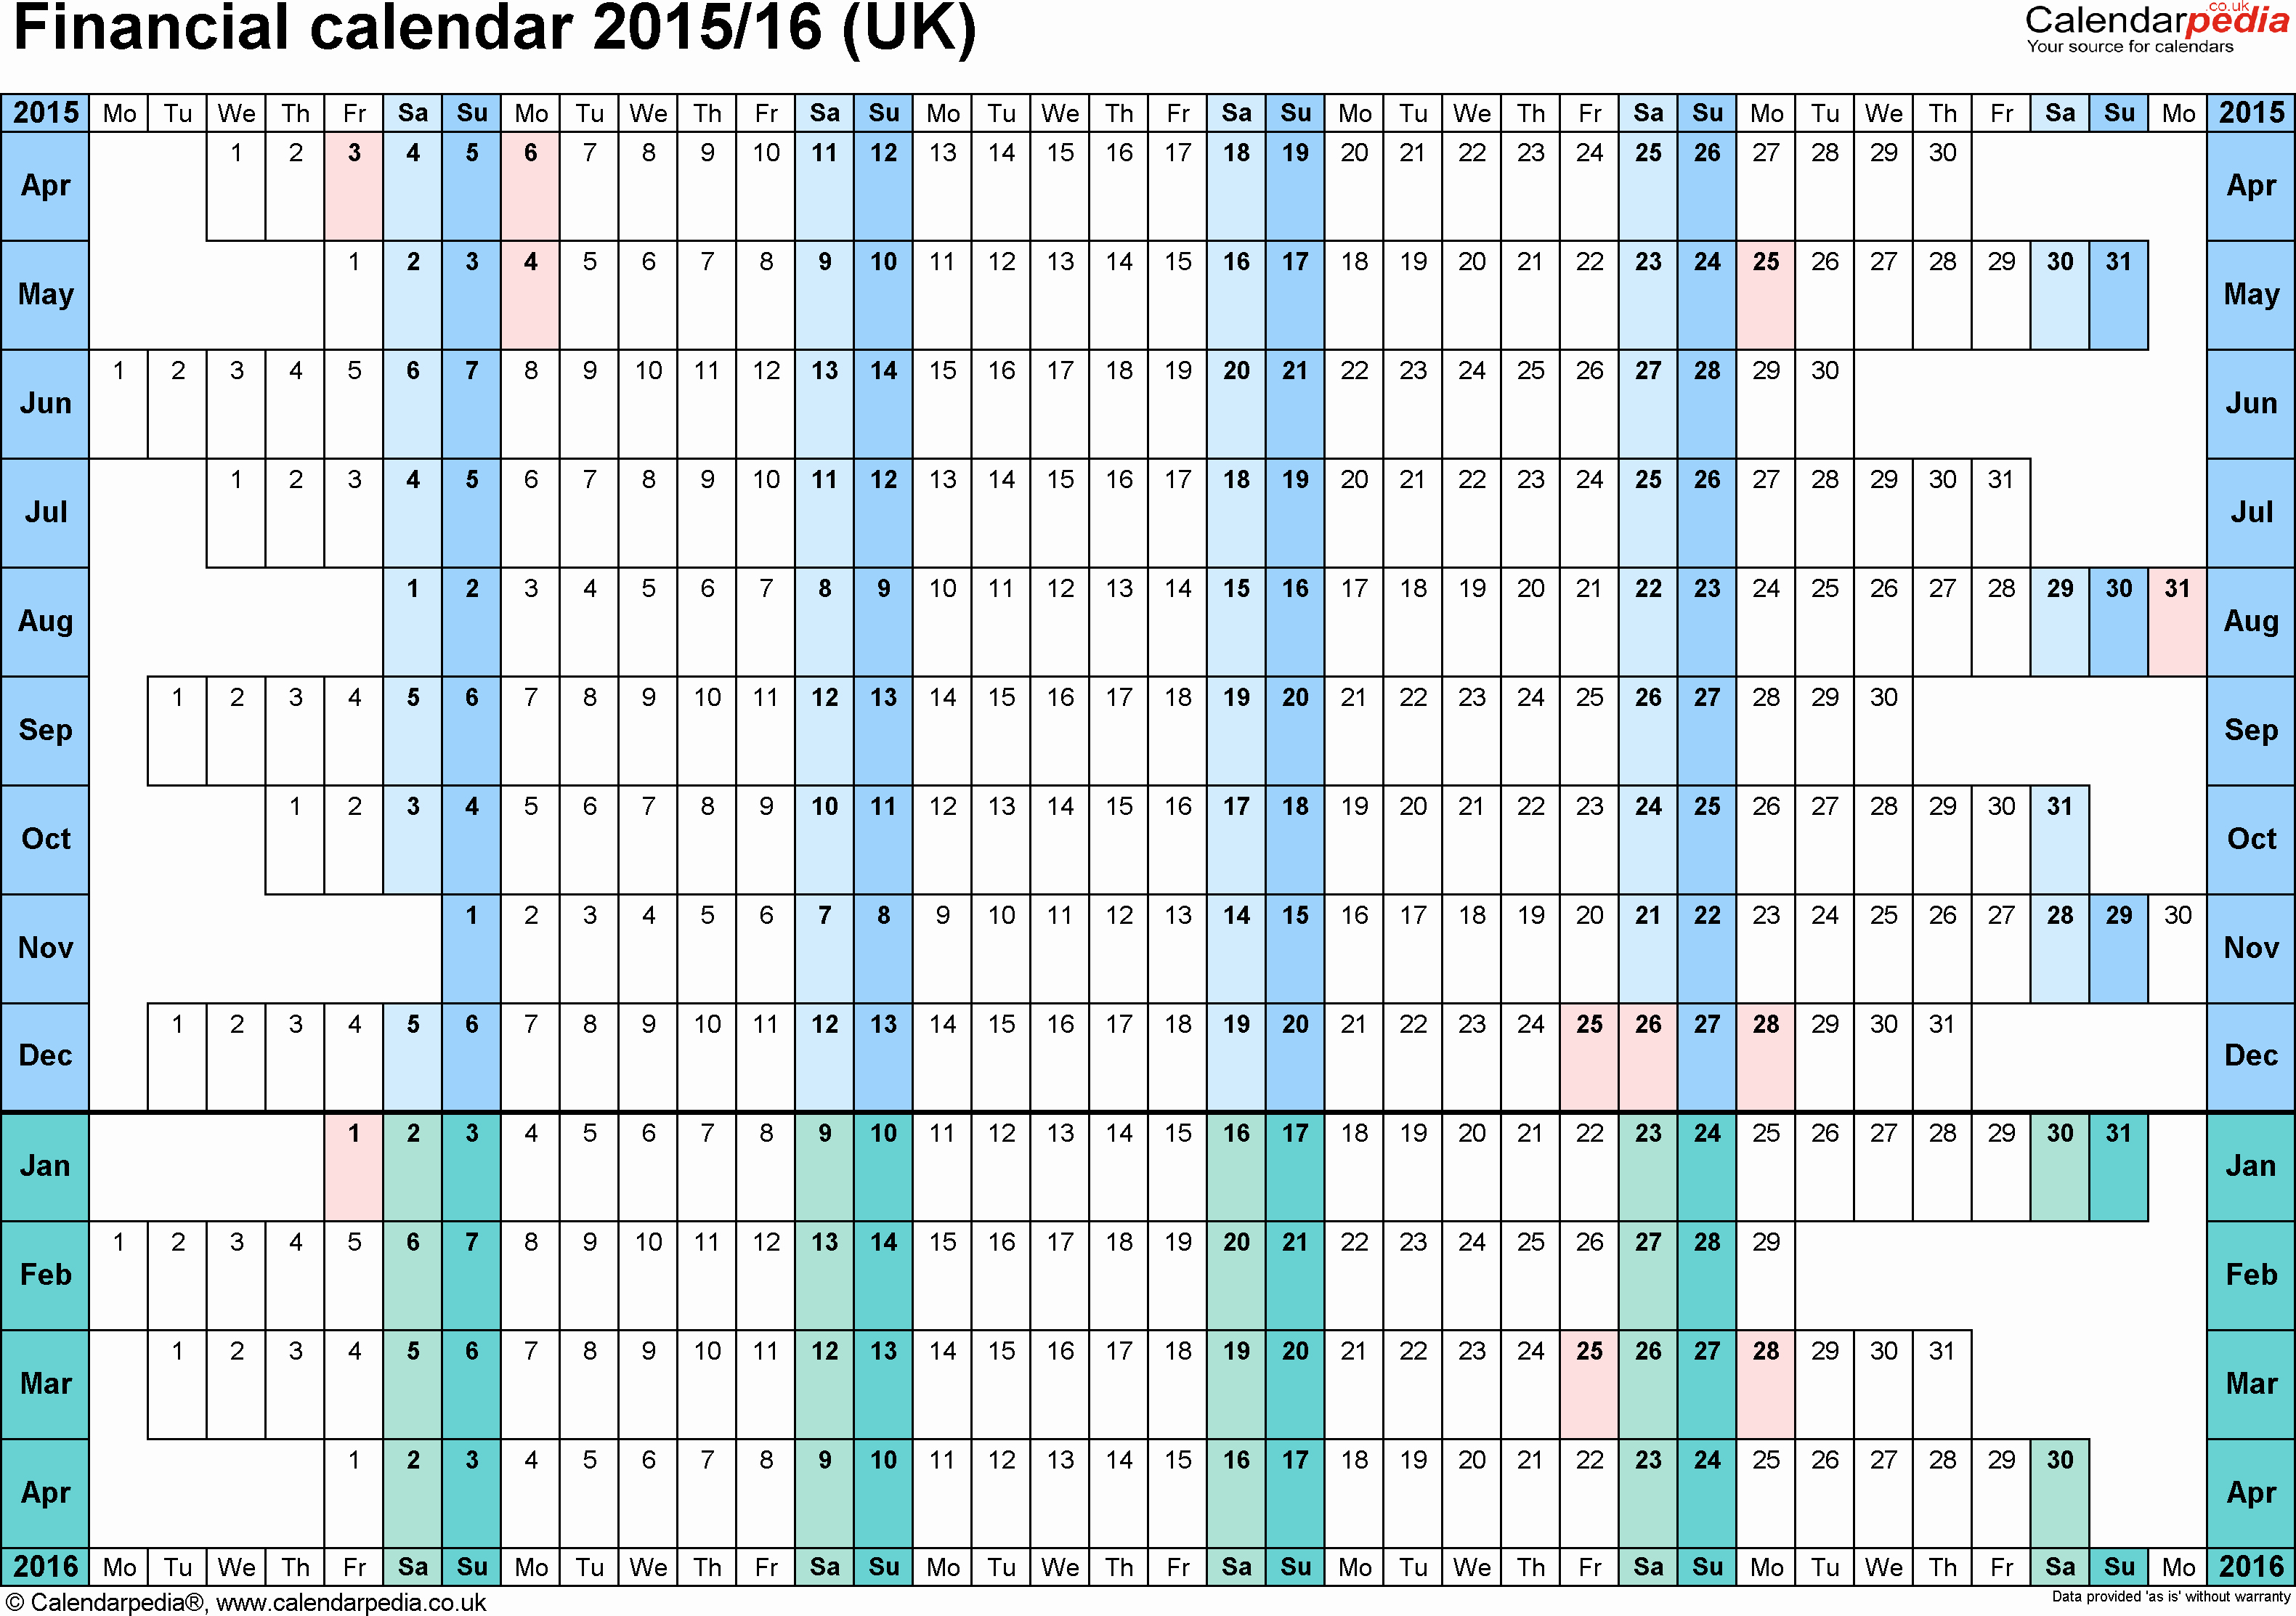 Calendar 2016-17 Template Luxury Financial Calendars 2015 16 Uk In Microsoft Word format